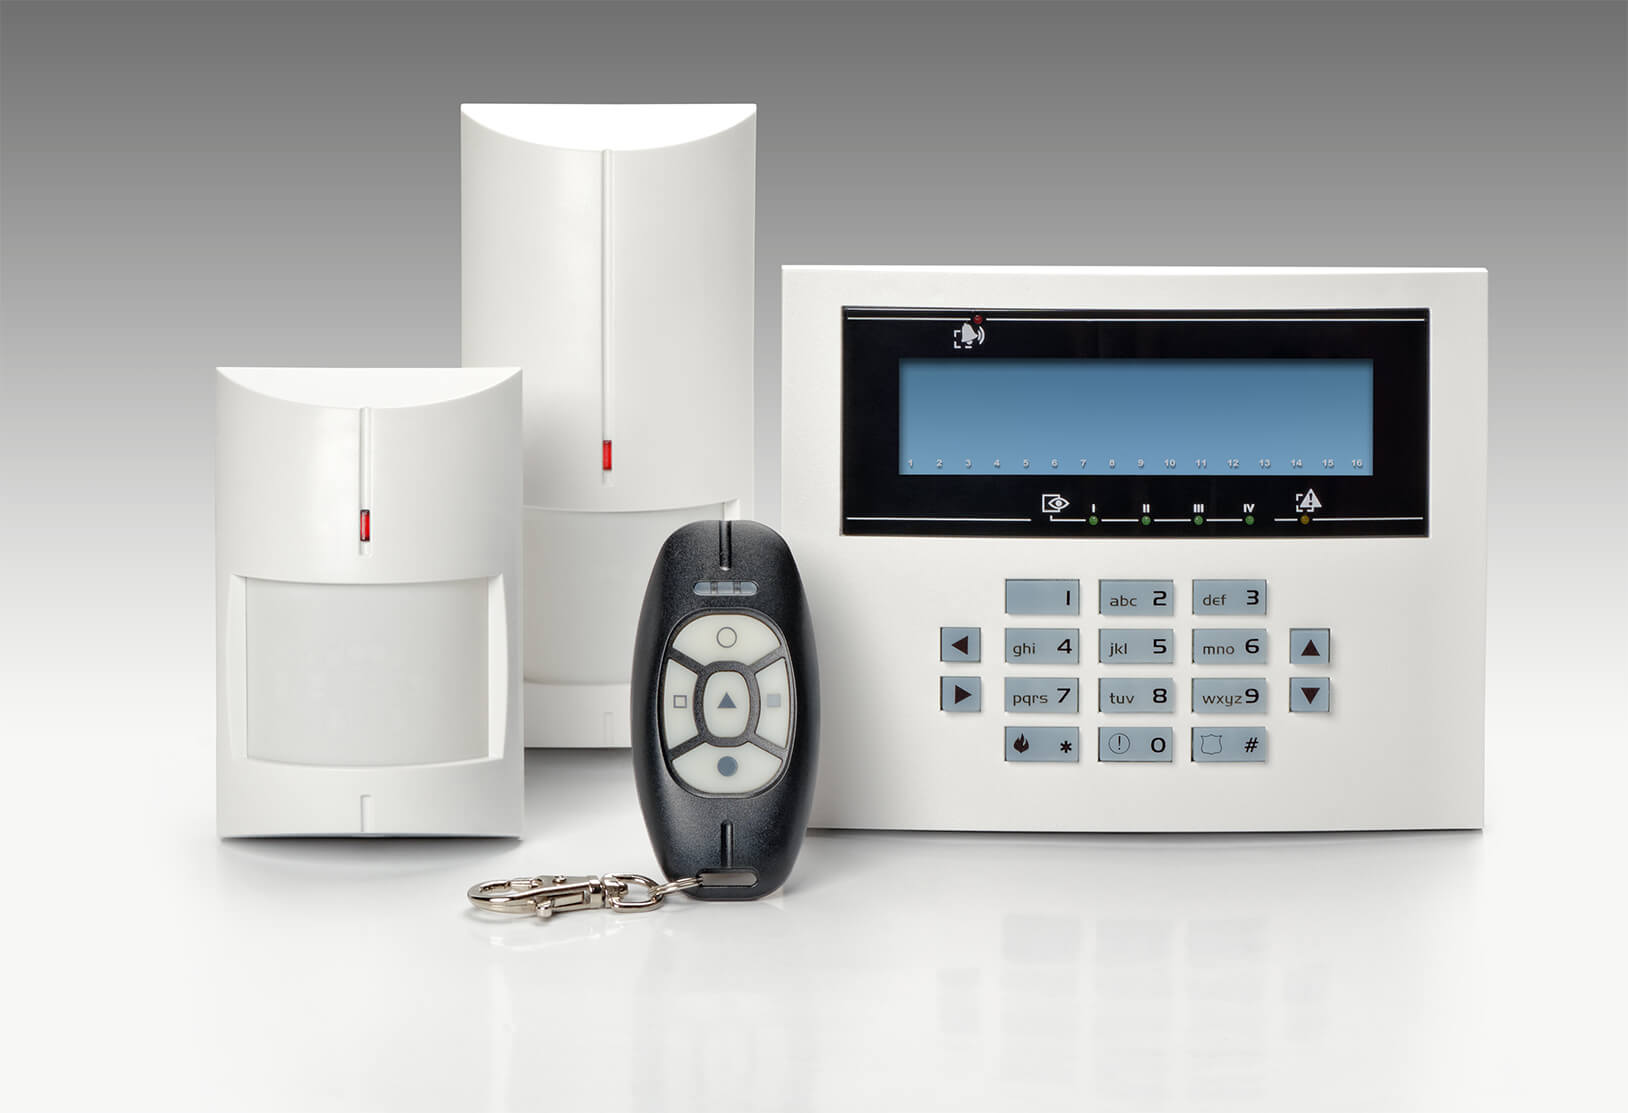 Business & Residential NACOSS Approved Burglar Alarms In Fulham W14 - Local Fulham W14 security company.Call 02078872244 - Dedicated to Safety & Security. Companies, shops and homes ..